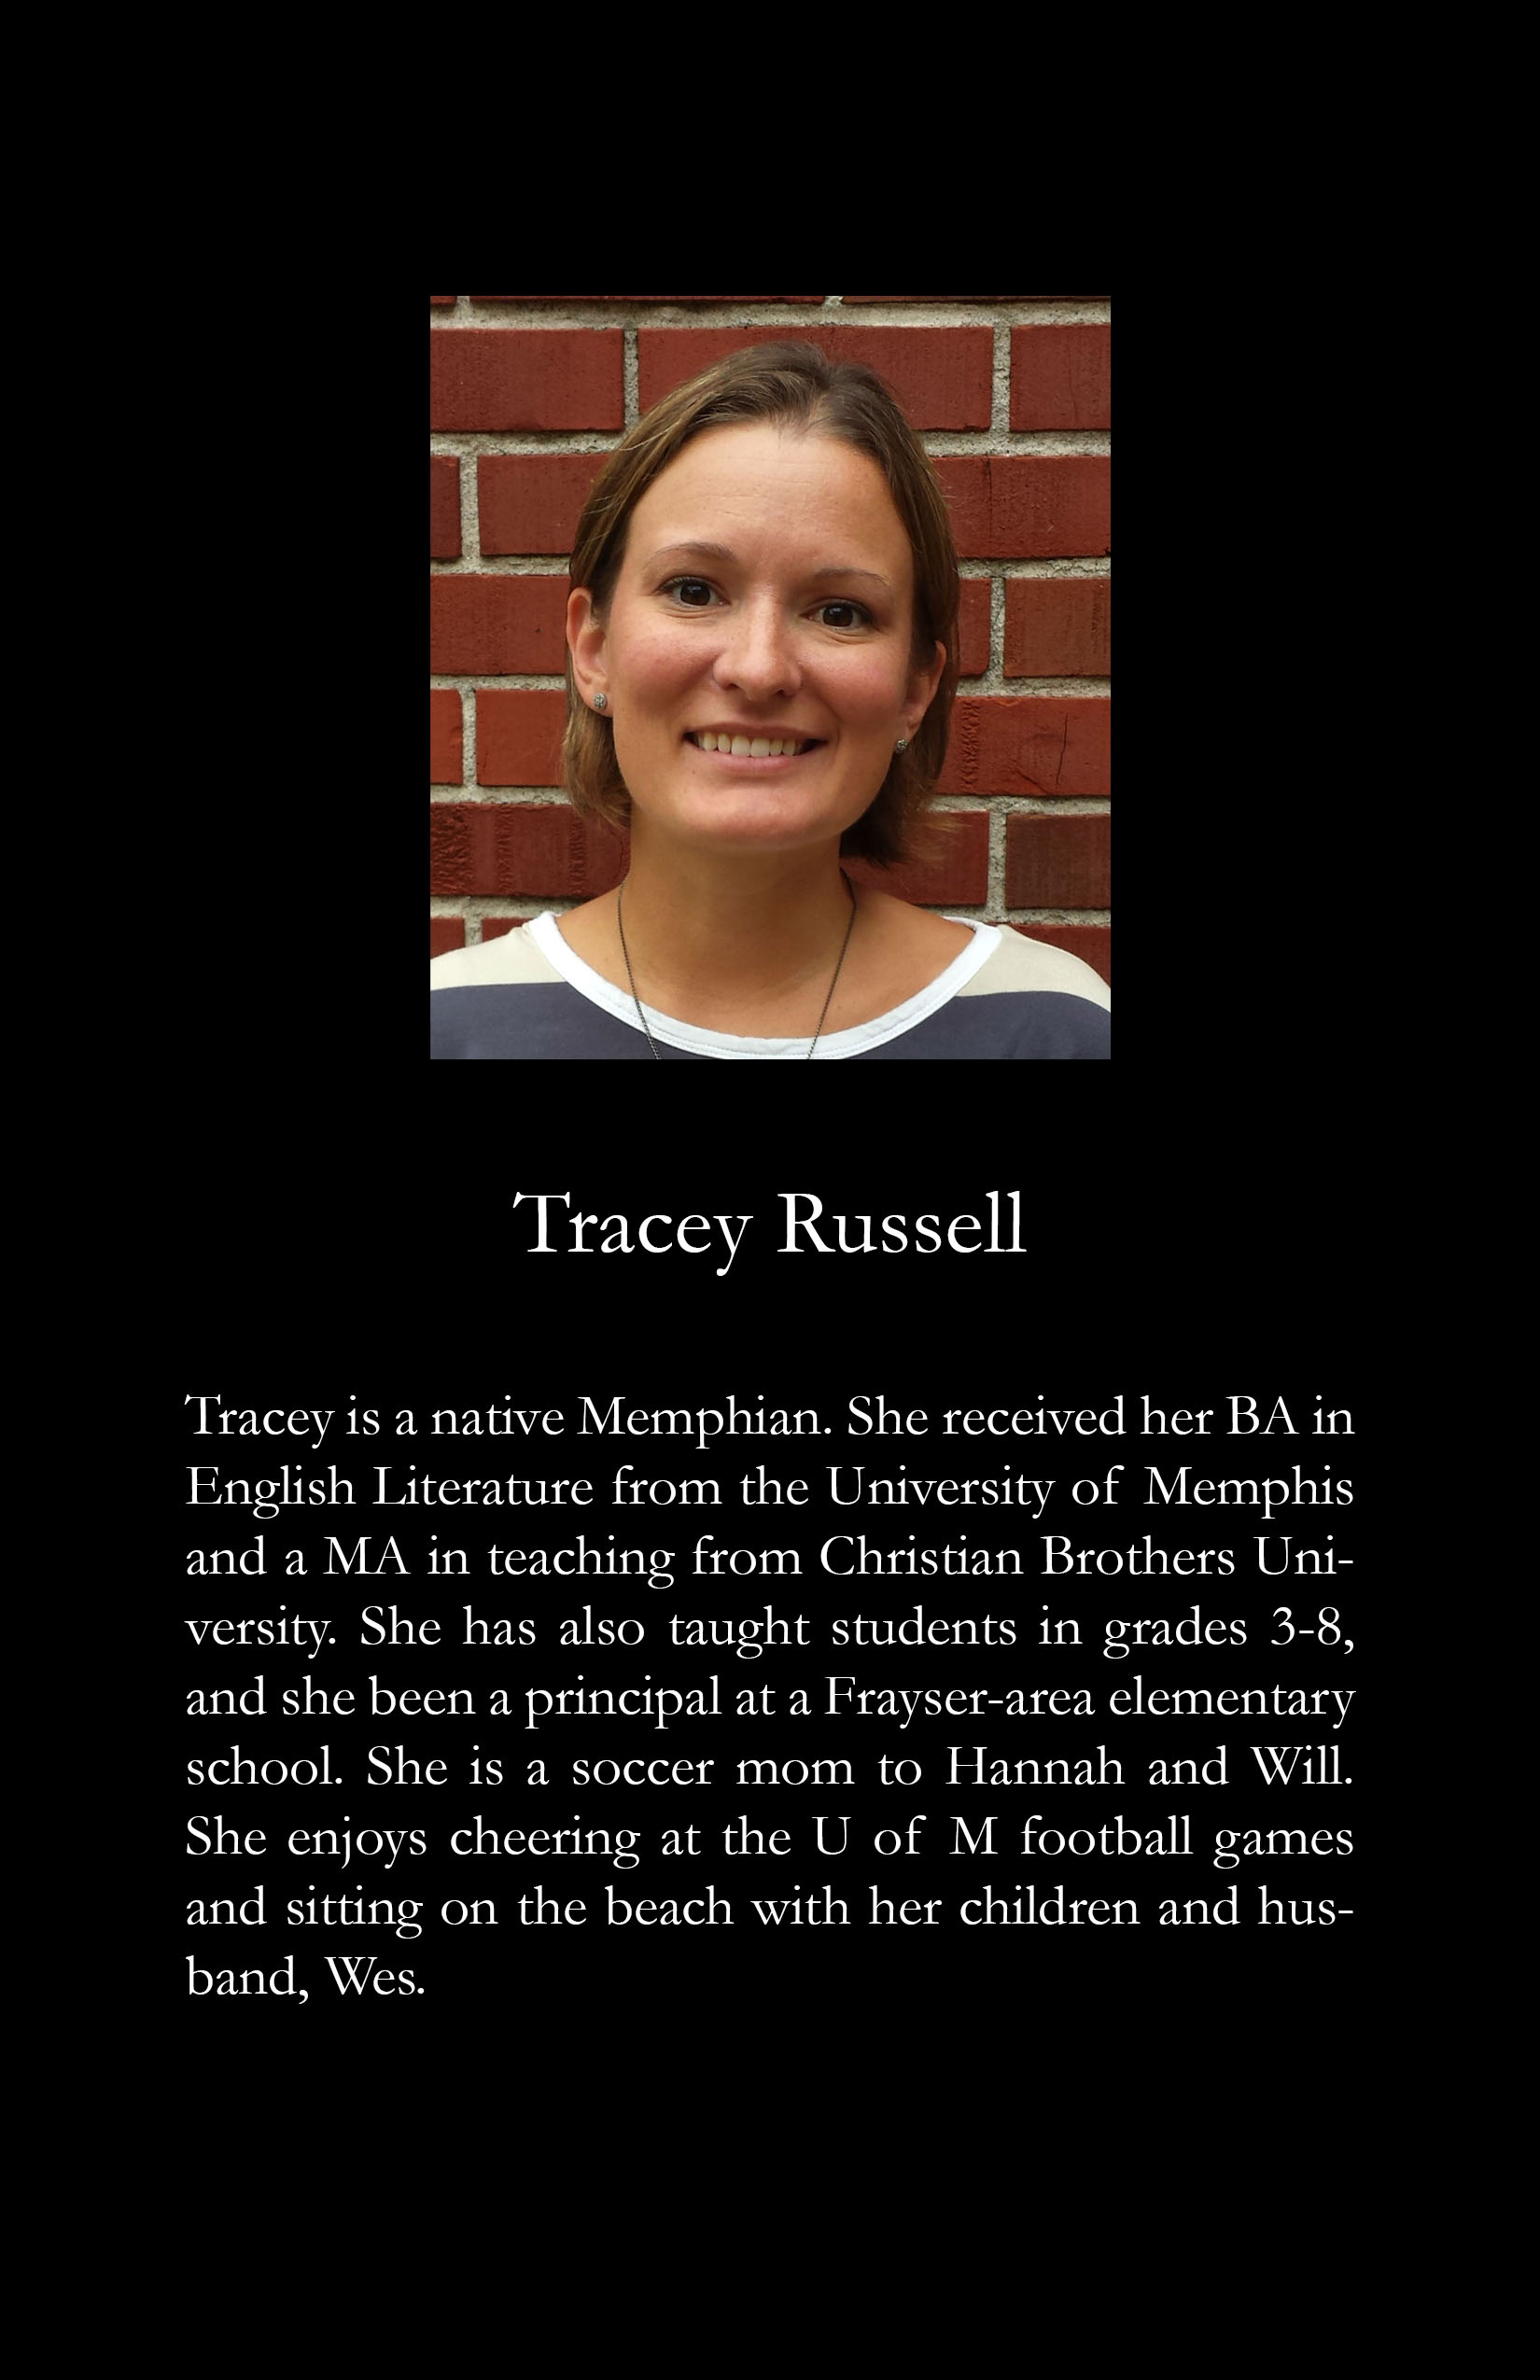 Tracey Russell.jpg